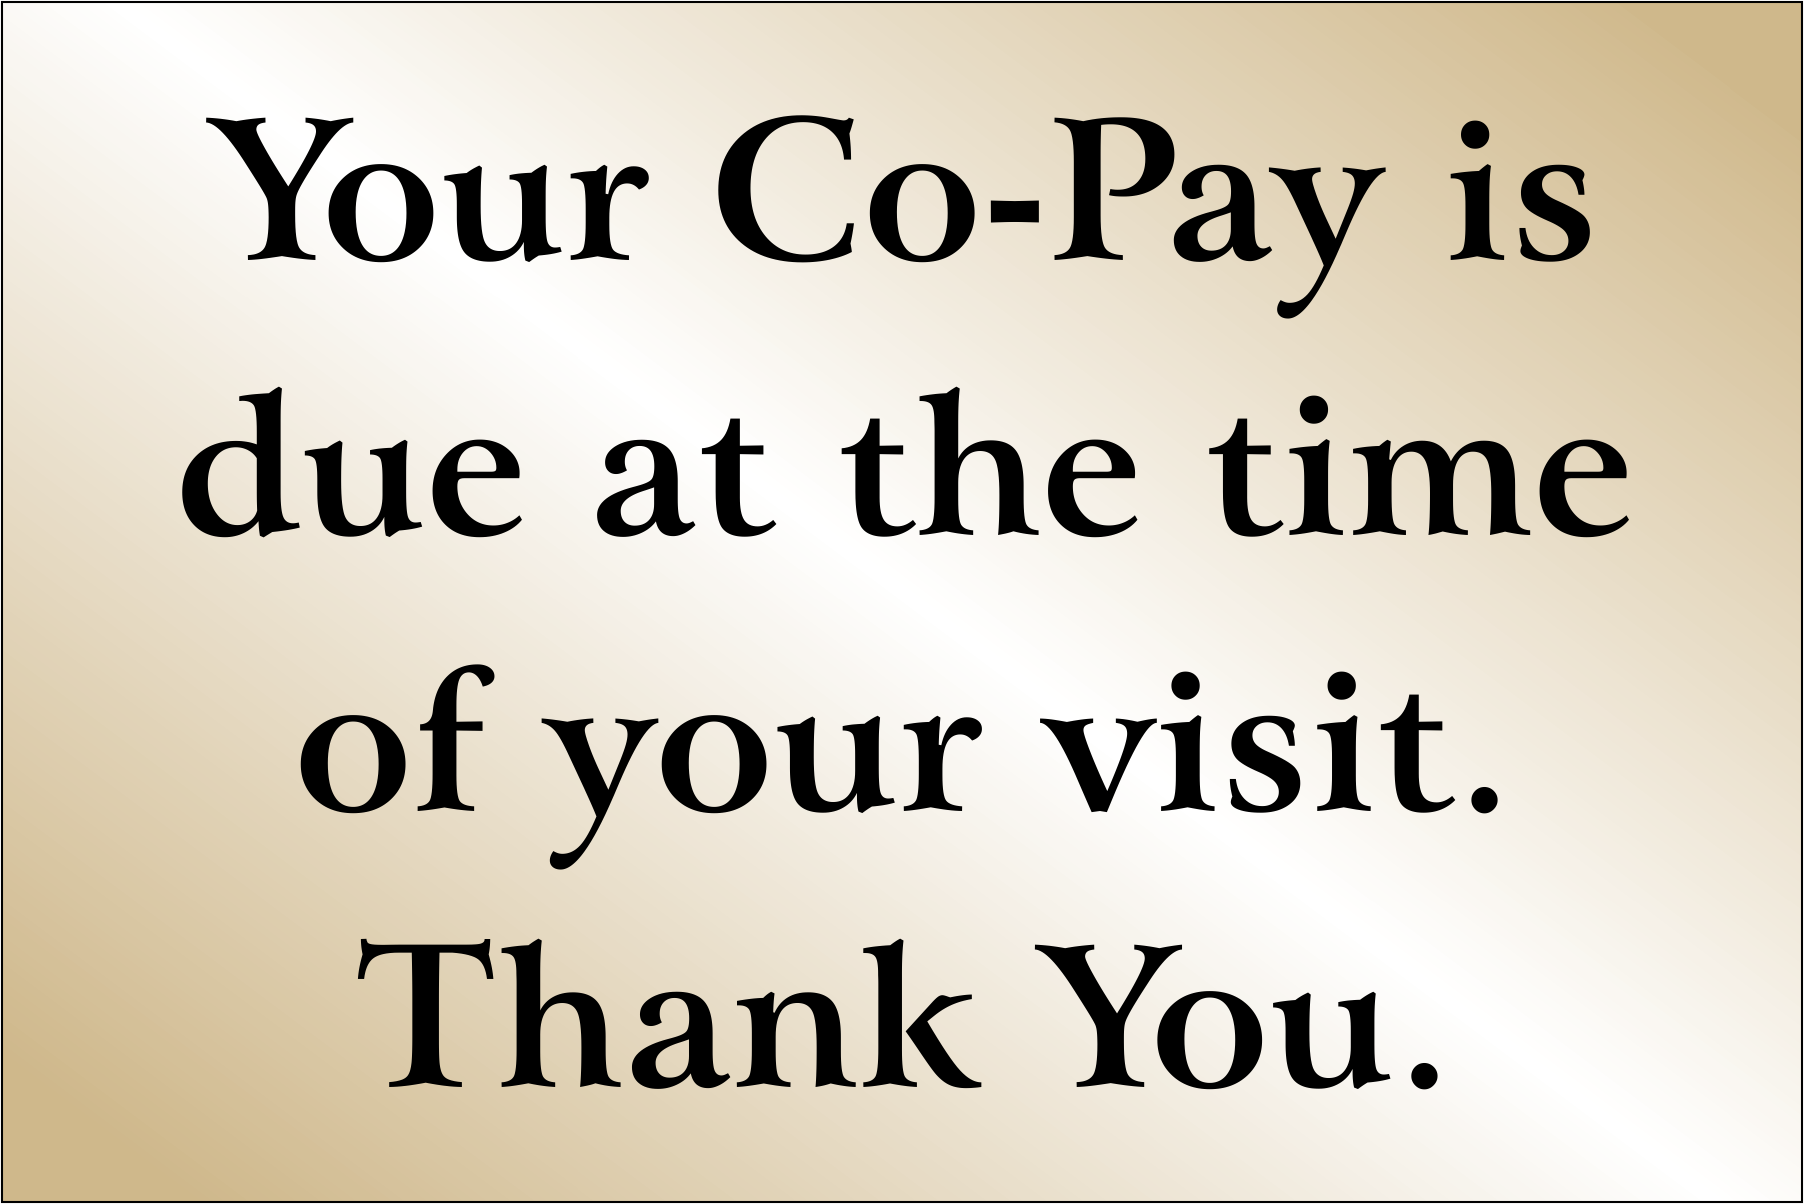 Co-Pay is due at time of Visit - 6